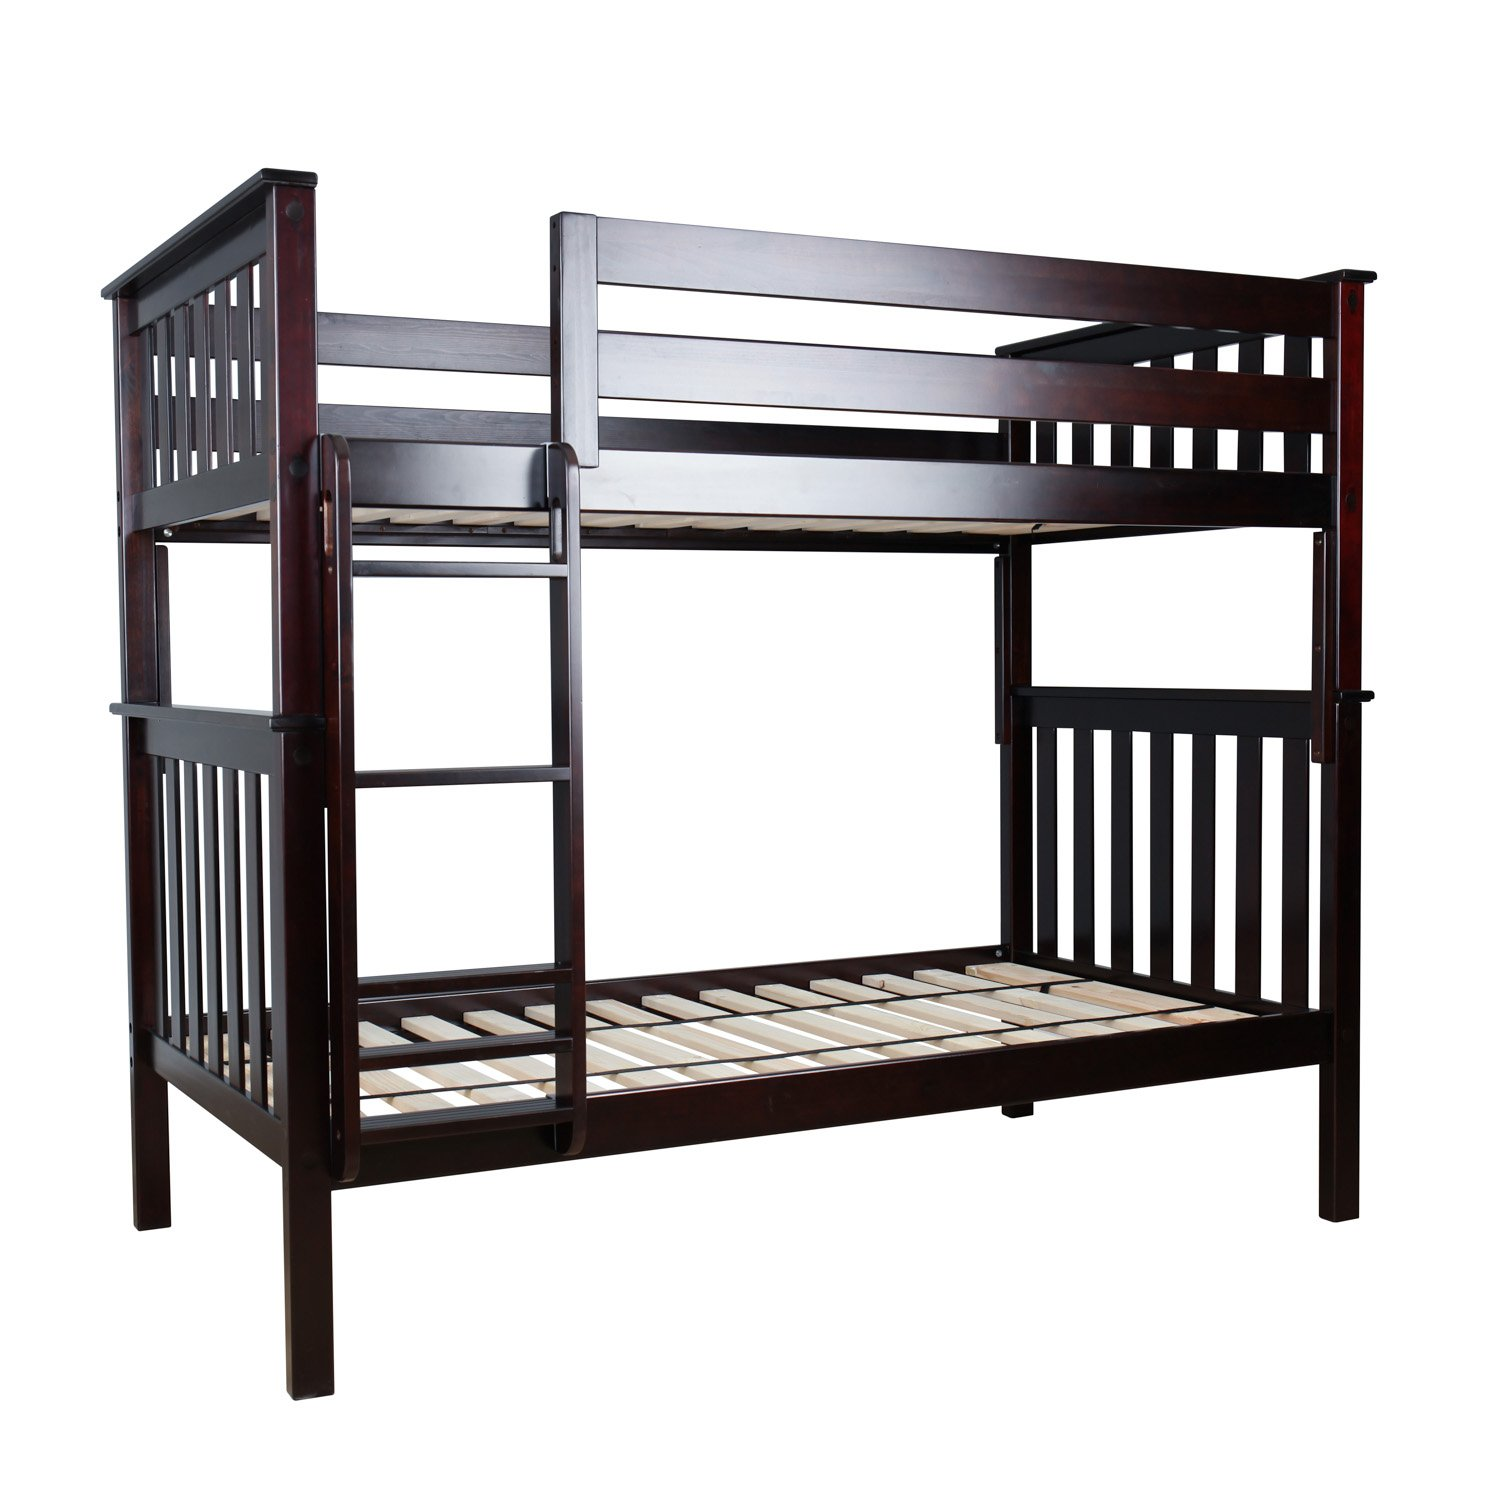 Heavy Duty Bunk Beds For Heavy People Are They Really Safe For